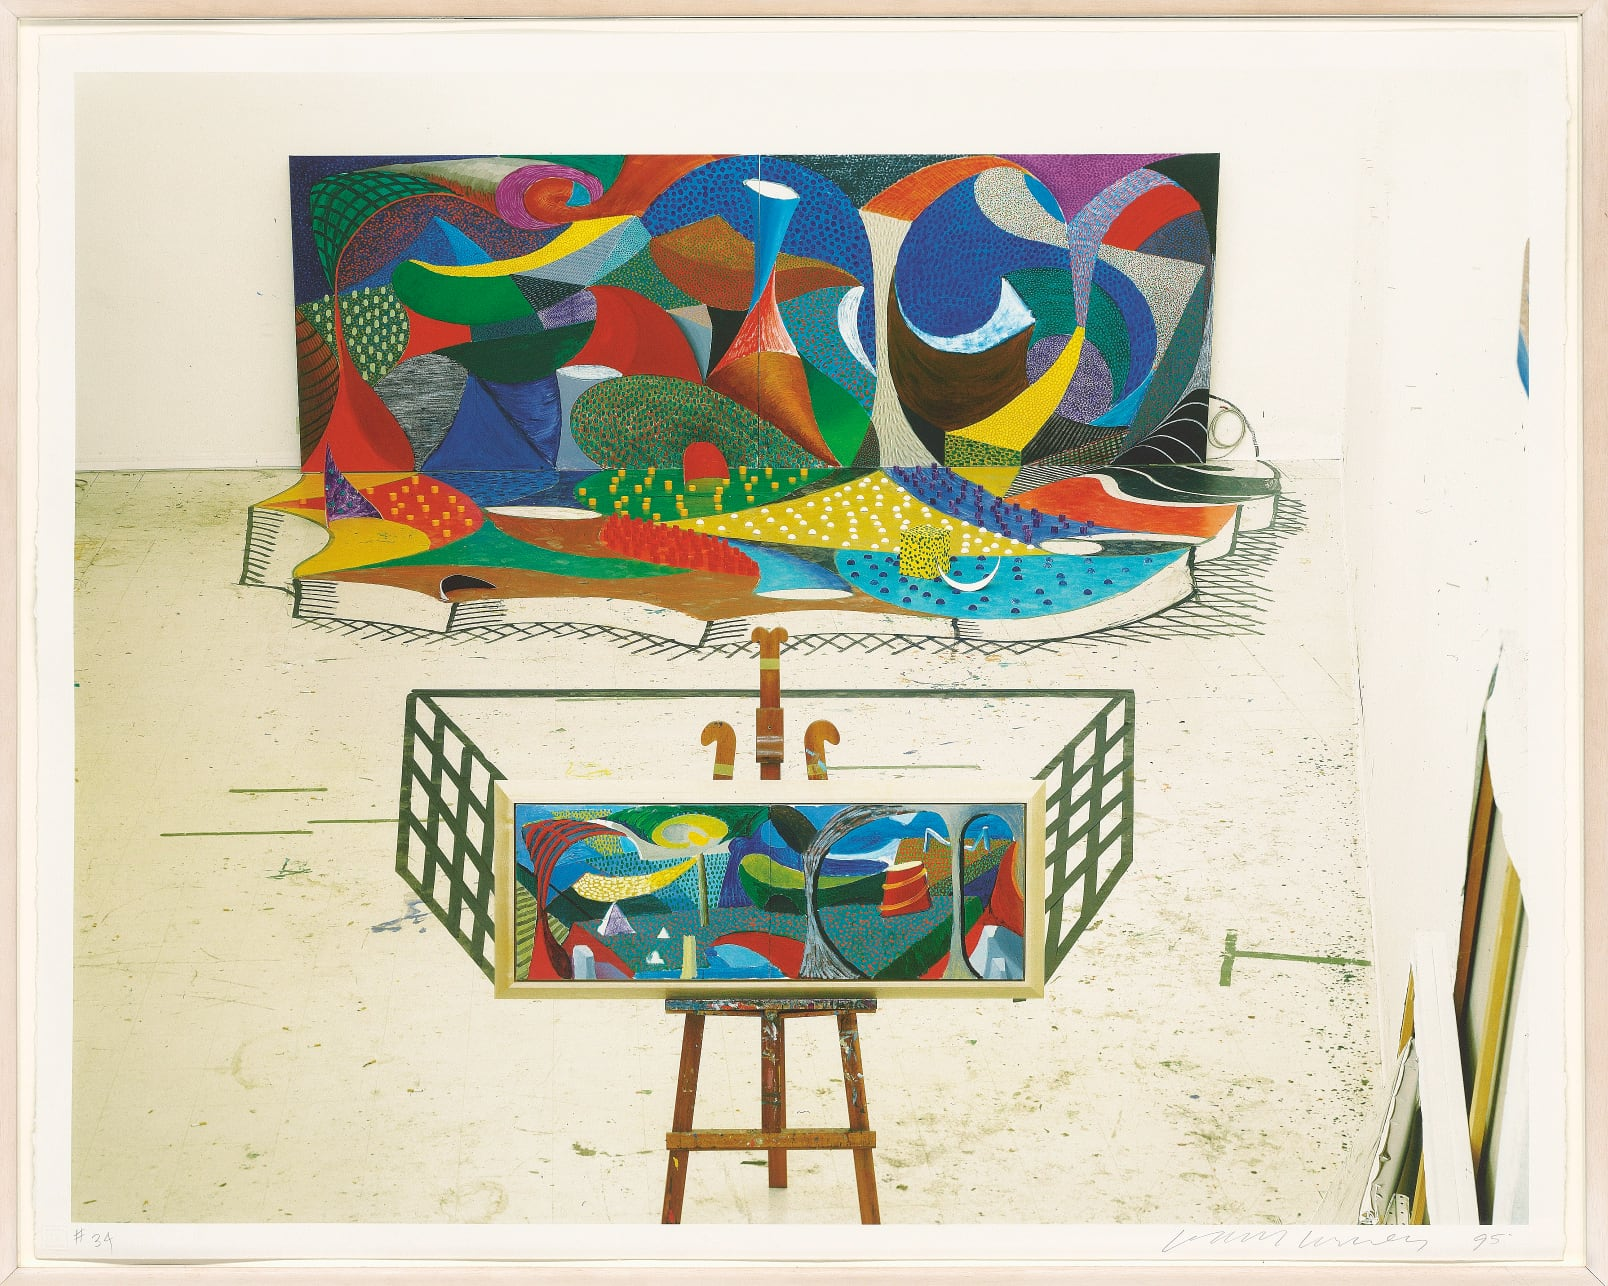 Snails Space: The Studio March 28th 1995 by David Hockney